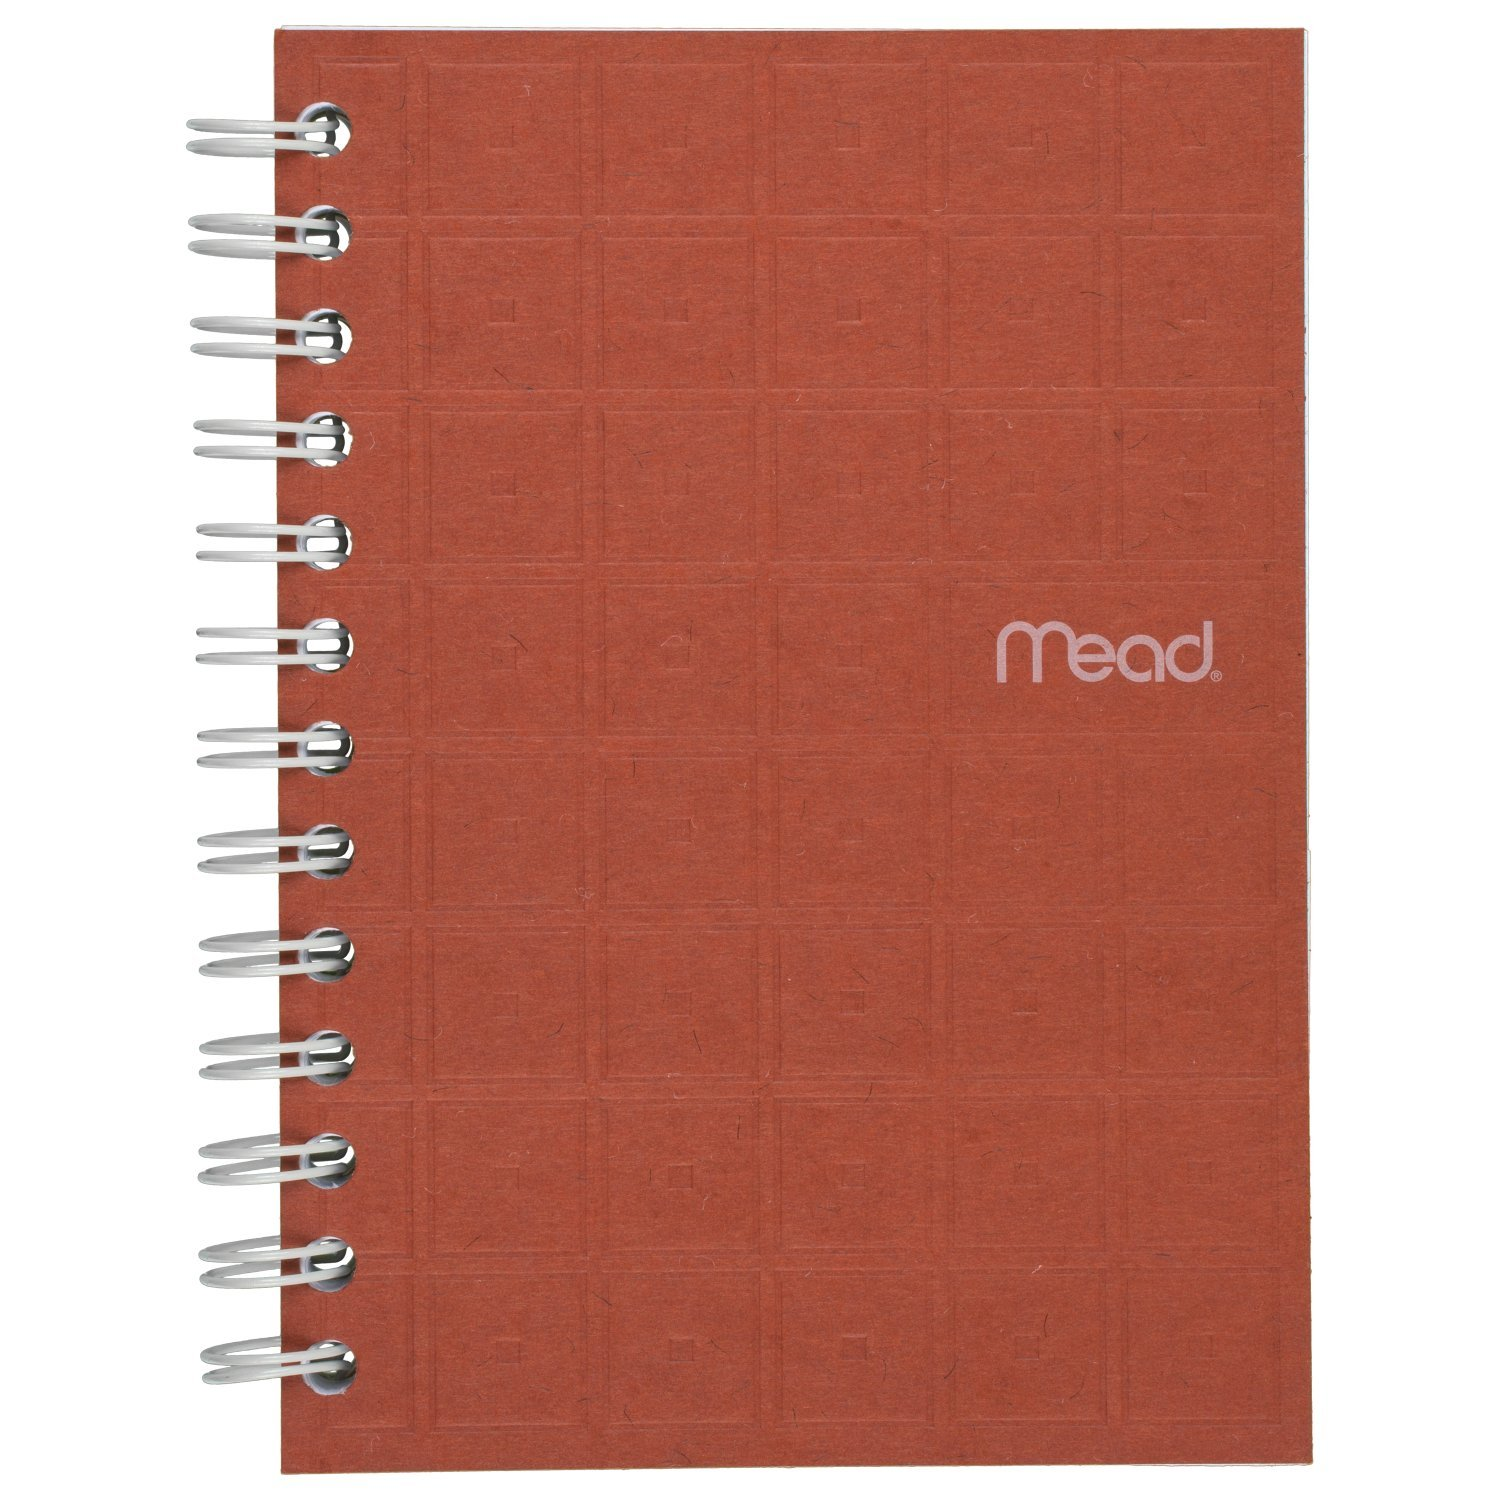 """Mead Spiral Notebook, College Ruled Paper, 80 Sheets, 7"""" x 5"""", Recycled, Assorted Colors (45186)"""